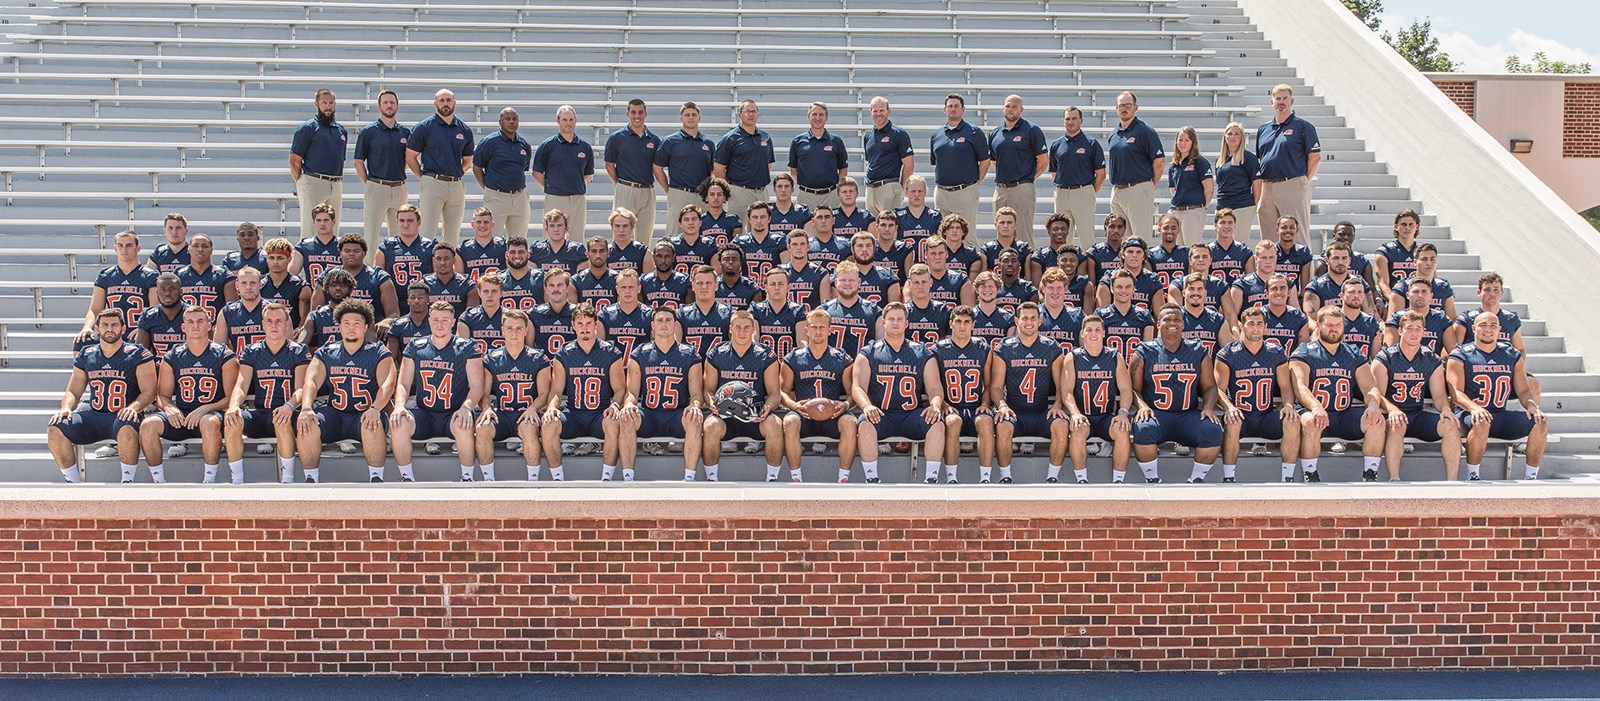 2019 Football Roster - Bucknell University Athletics